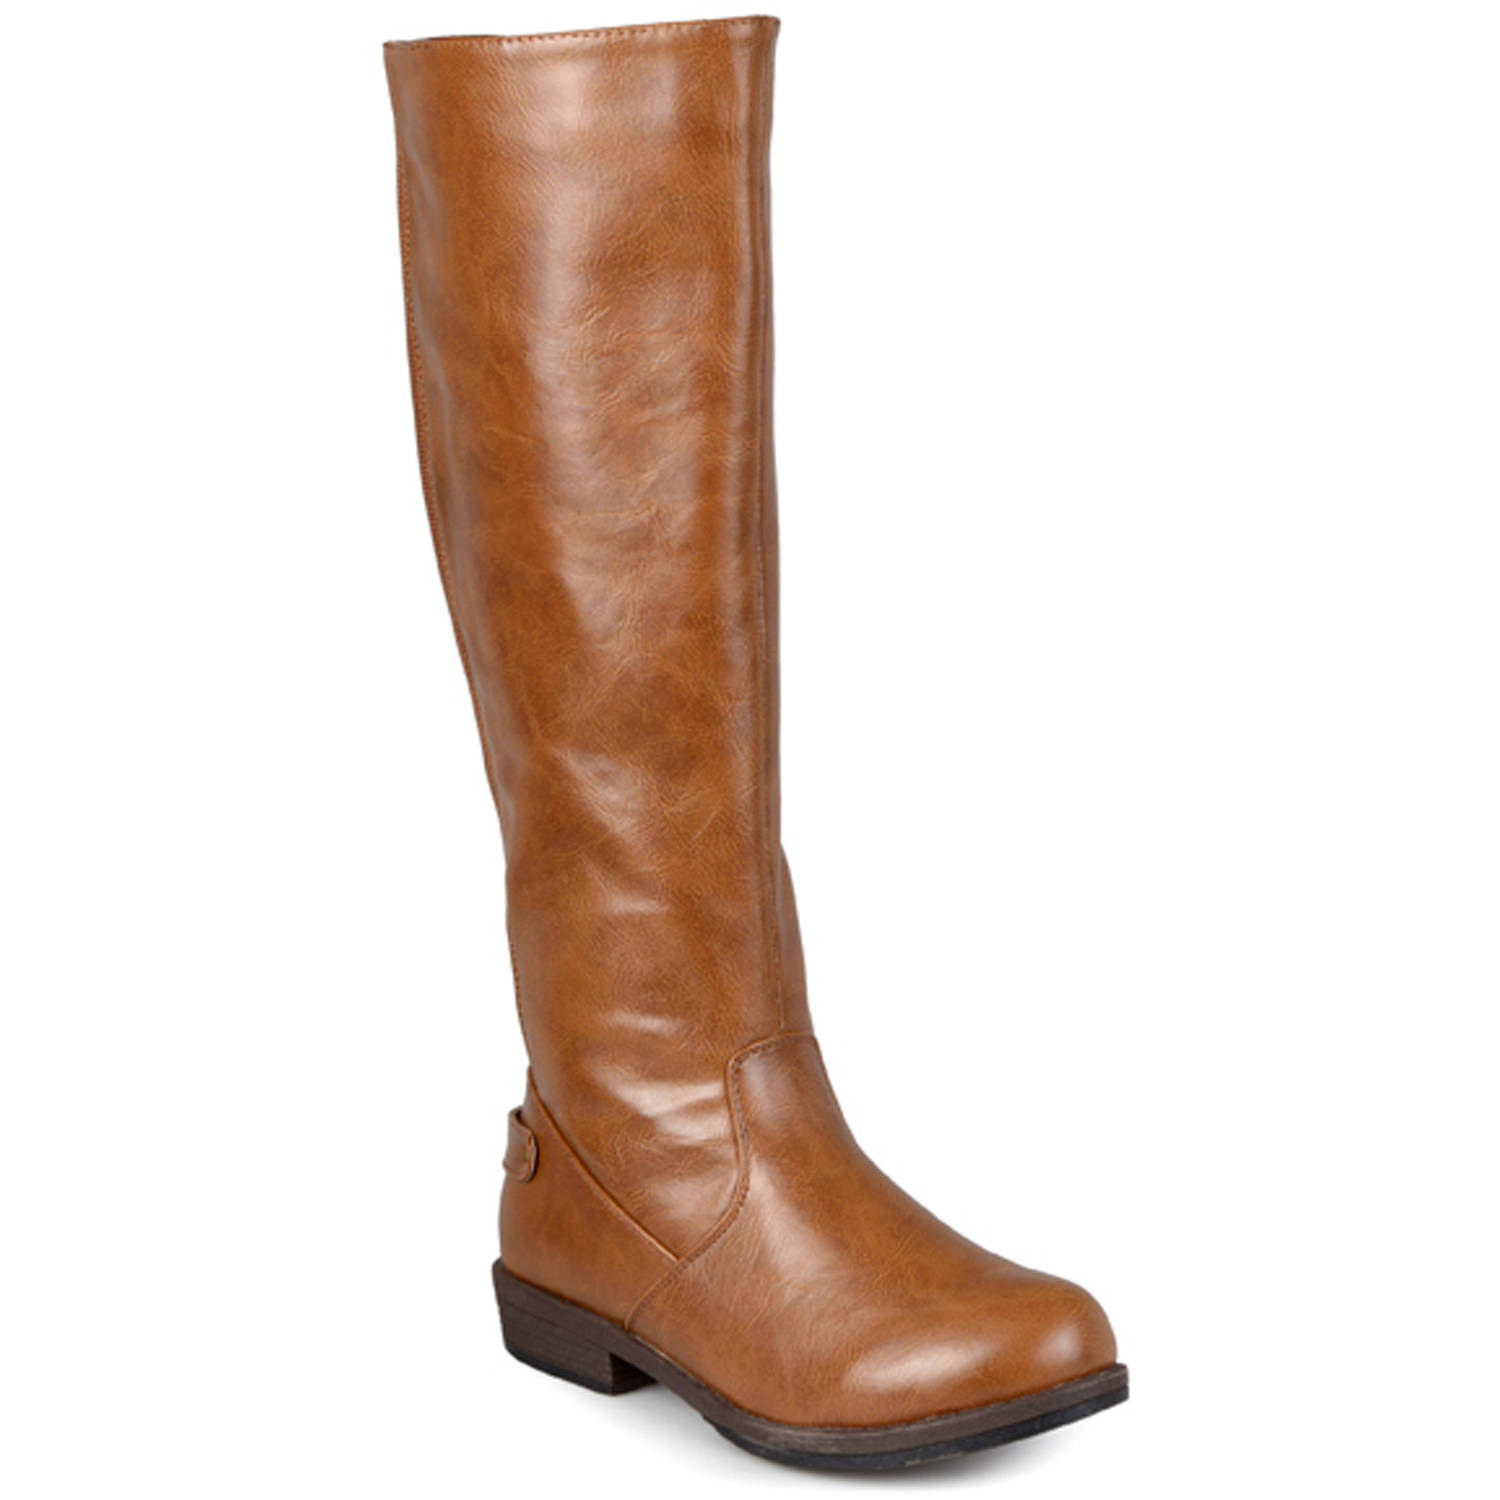 Brinley Co. Women's Wide-Calf Knee-High Stretch Riding Boot